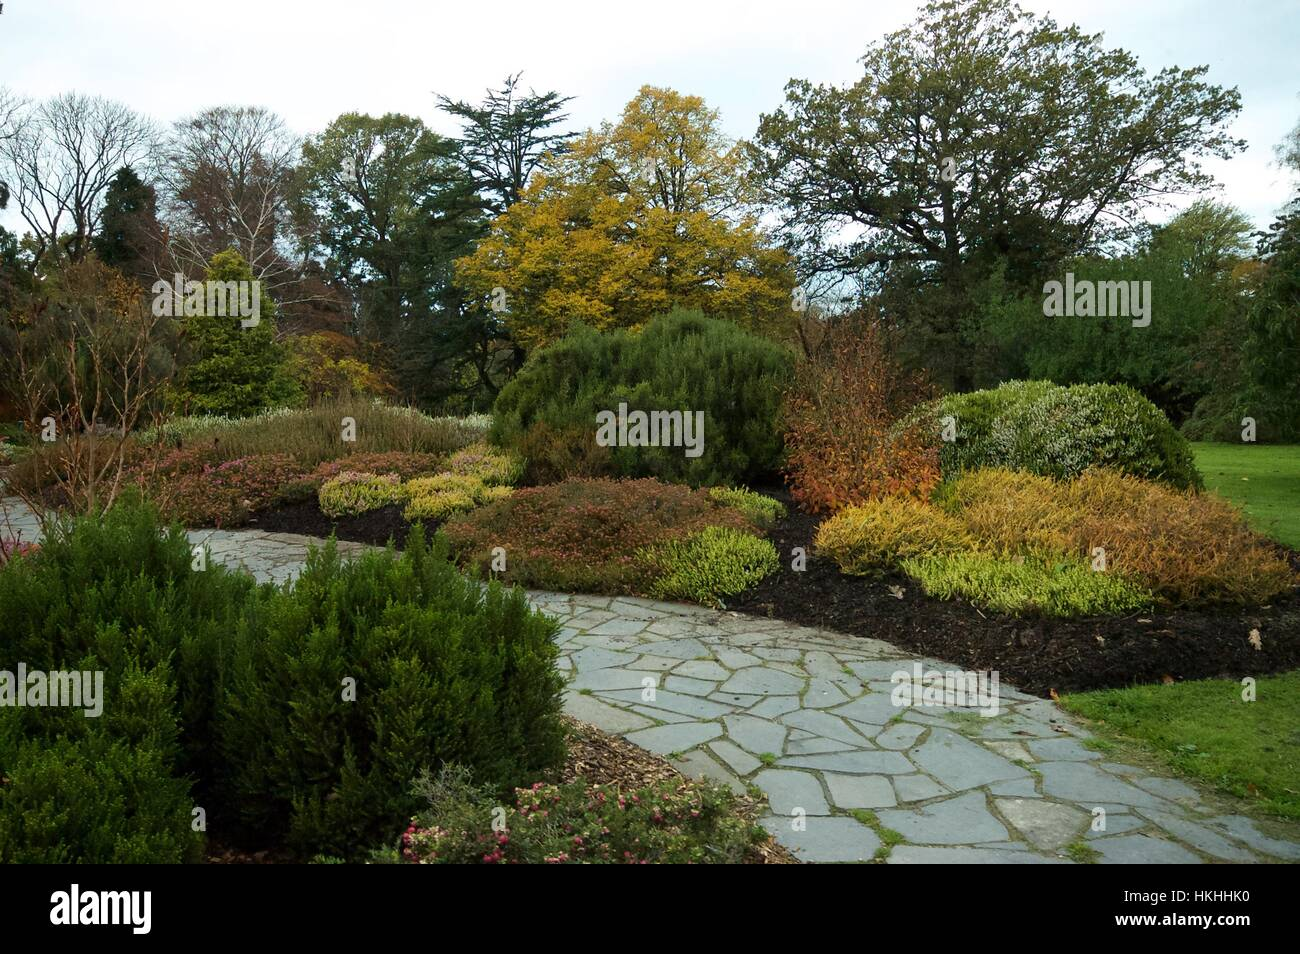 The Butchart Gardens in Victoria Canada Stock Photo: 132538084 - Alamy